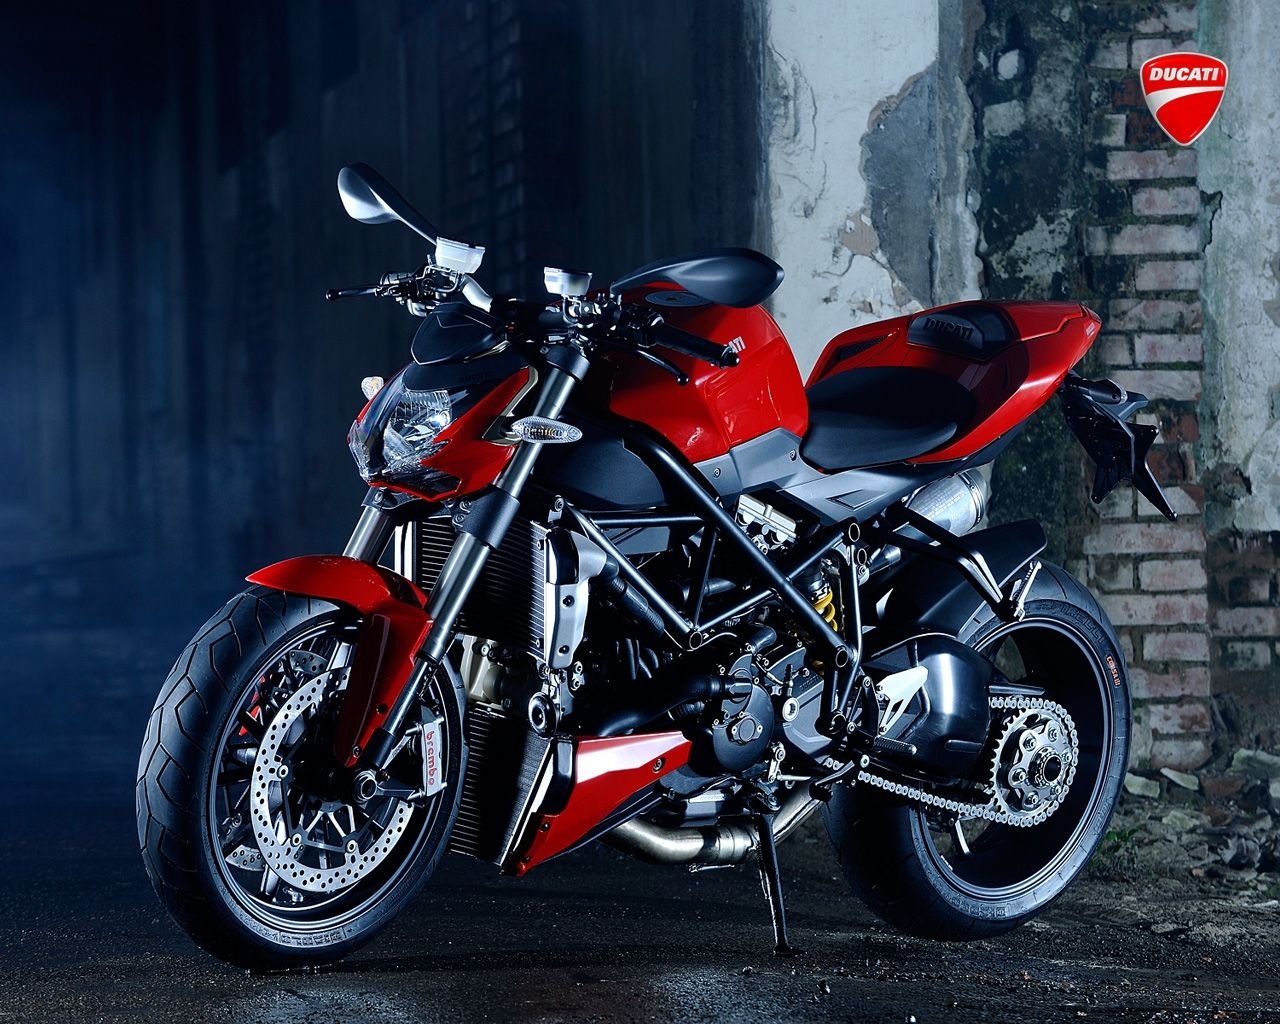 Ducati Streetfighter Wallpapers HD